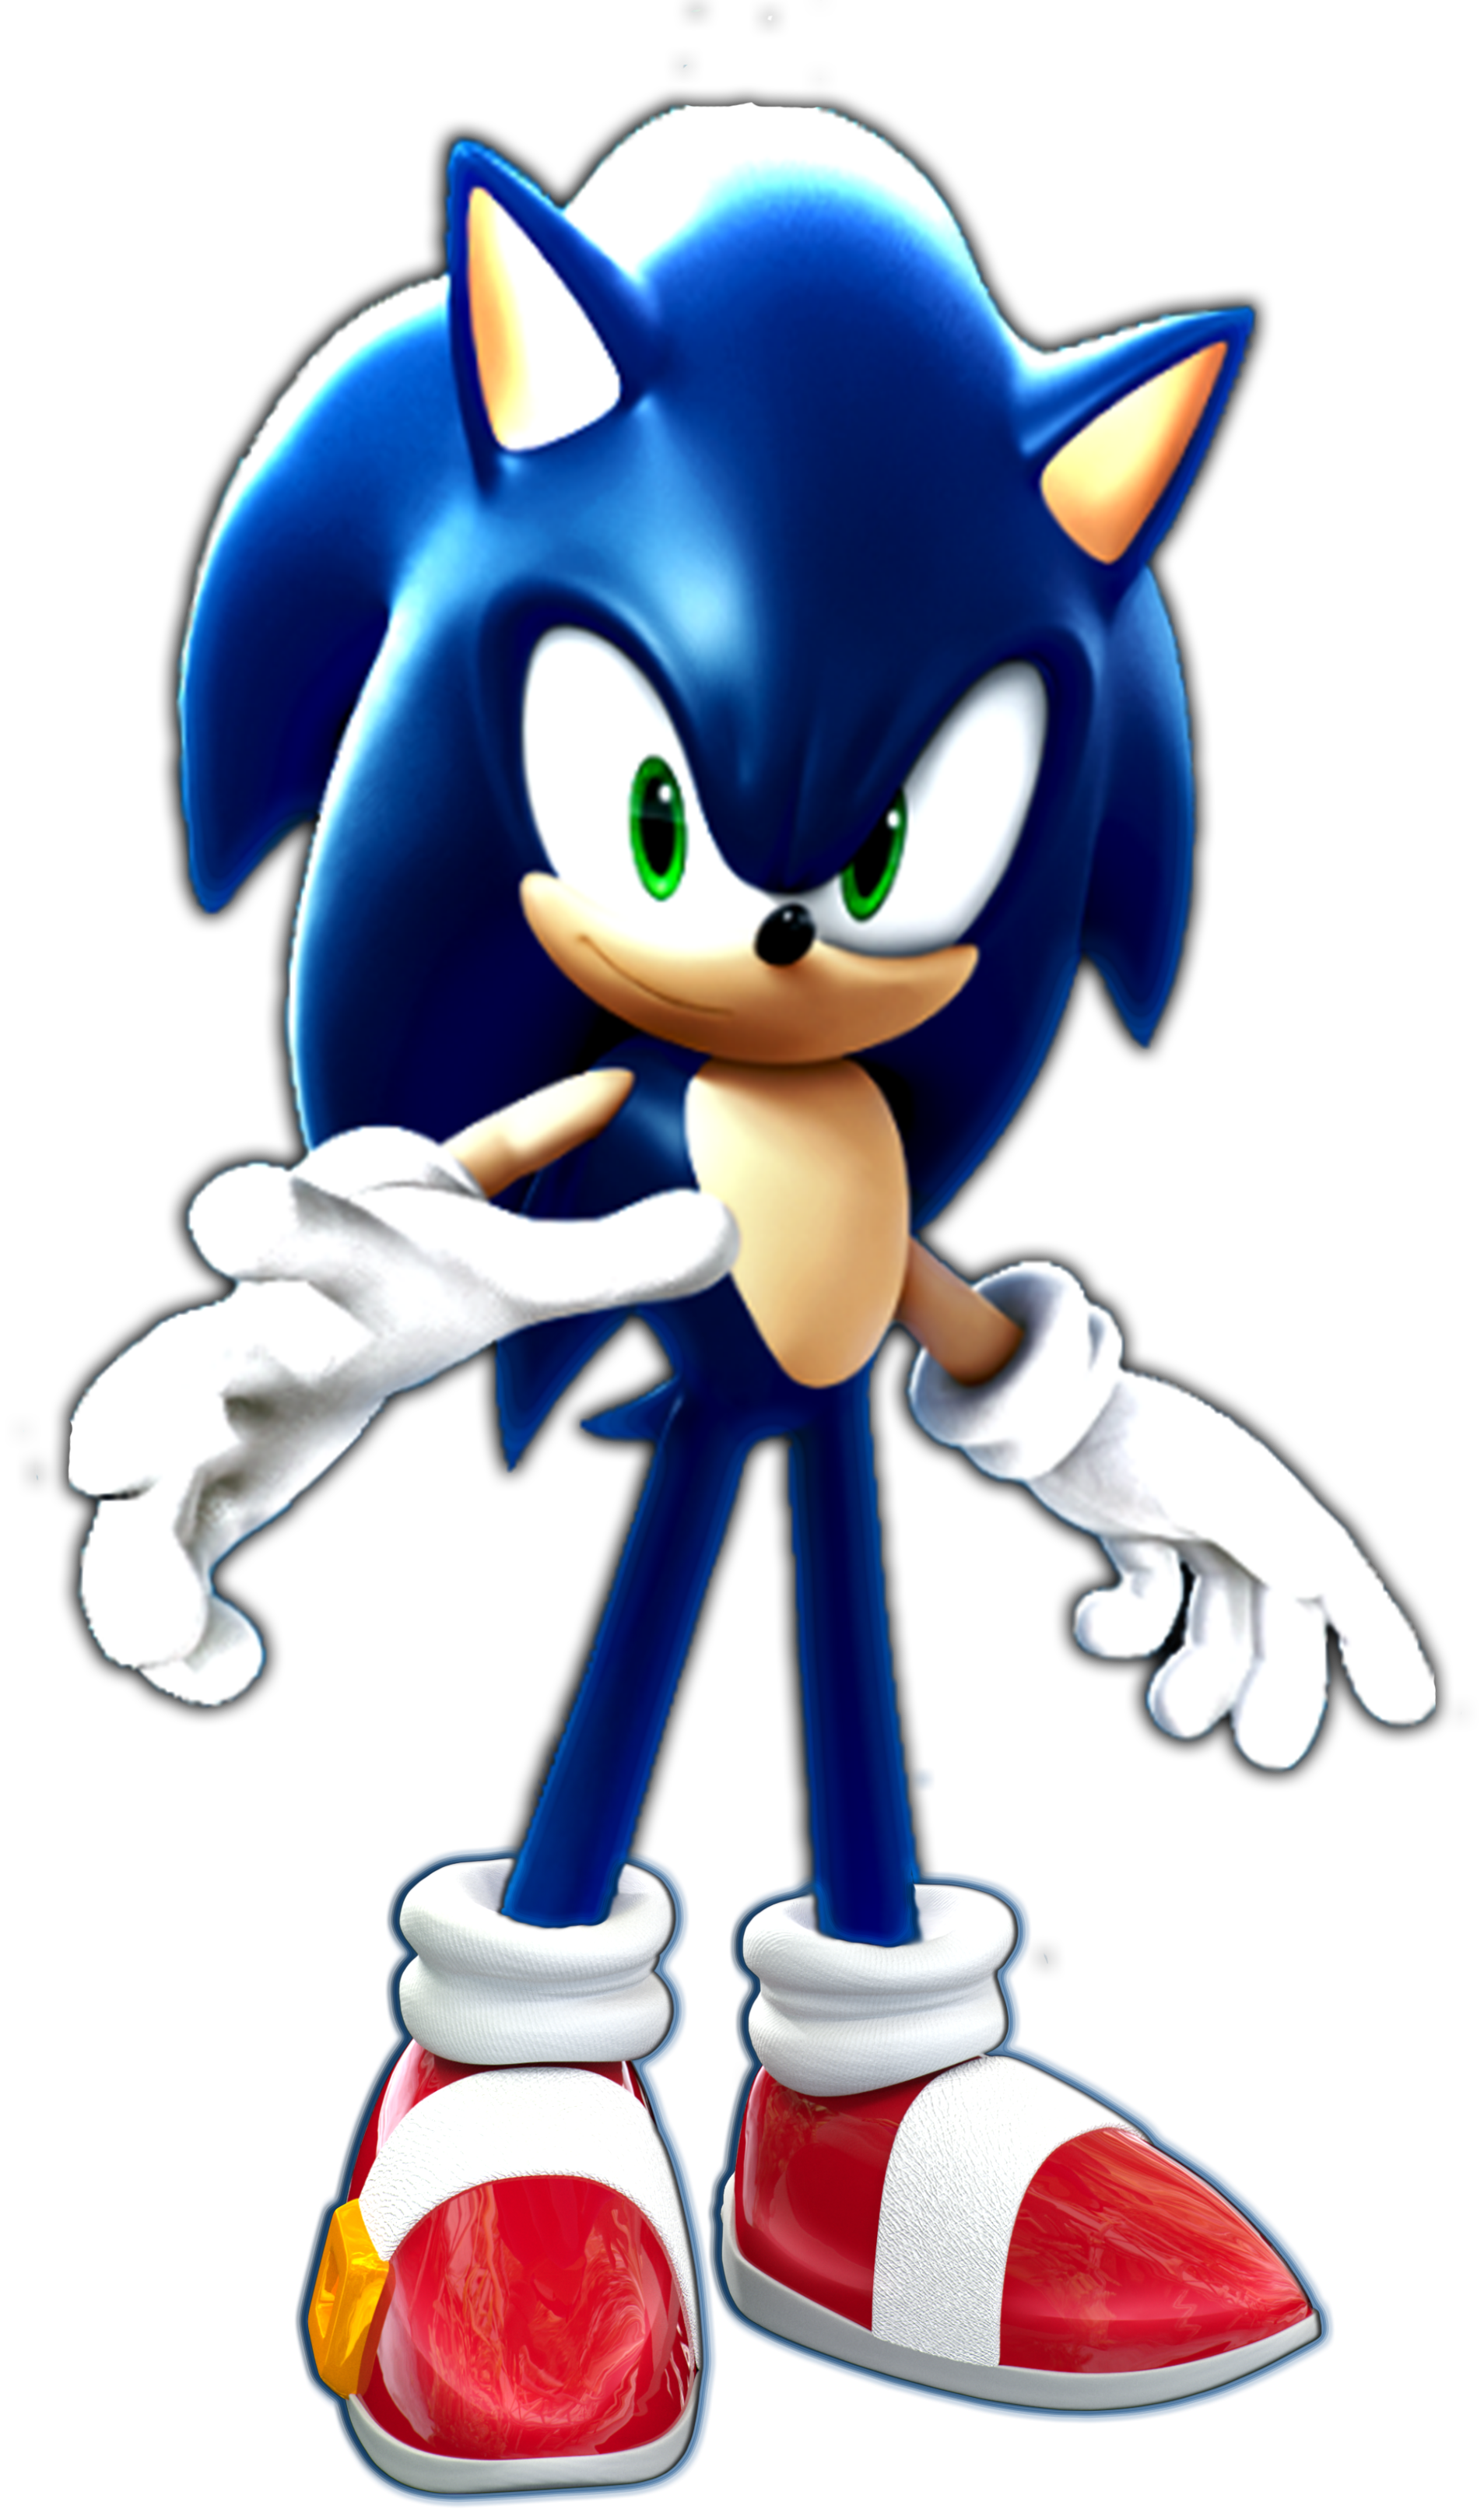 a description of sonic corporation founded by tony smith in shawnee Analysis of sonic corporation in 1953 sonic corporation was founded by tony smith in shawnee, oklahoma under a different name of the top hat tony smith started the company as a.